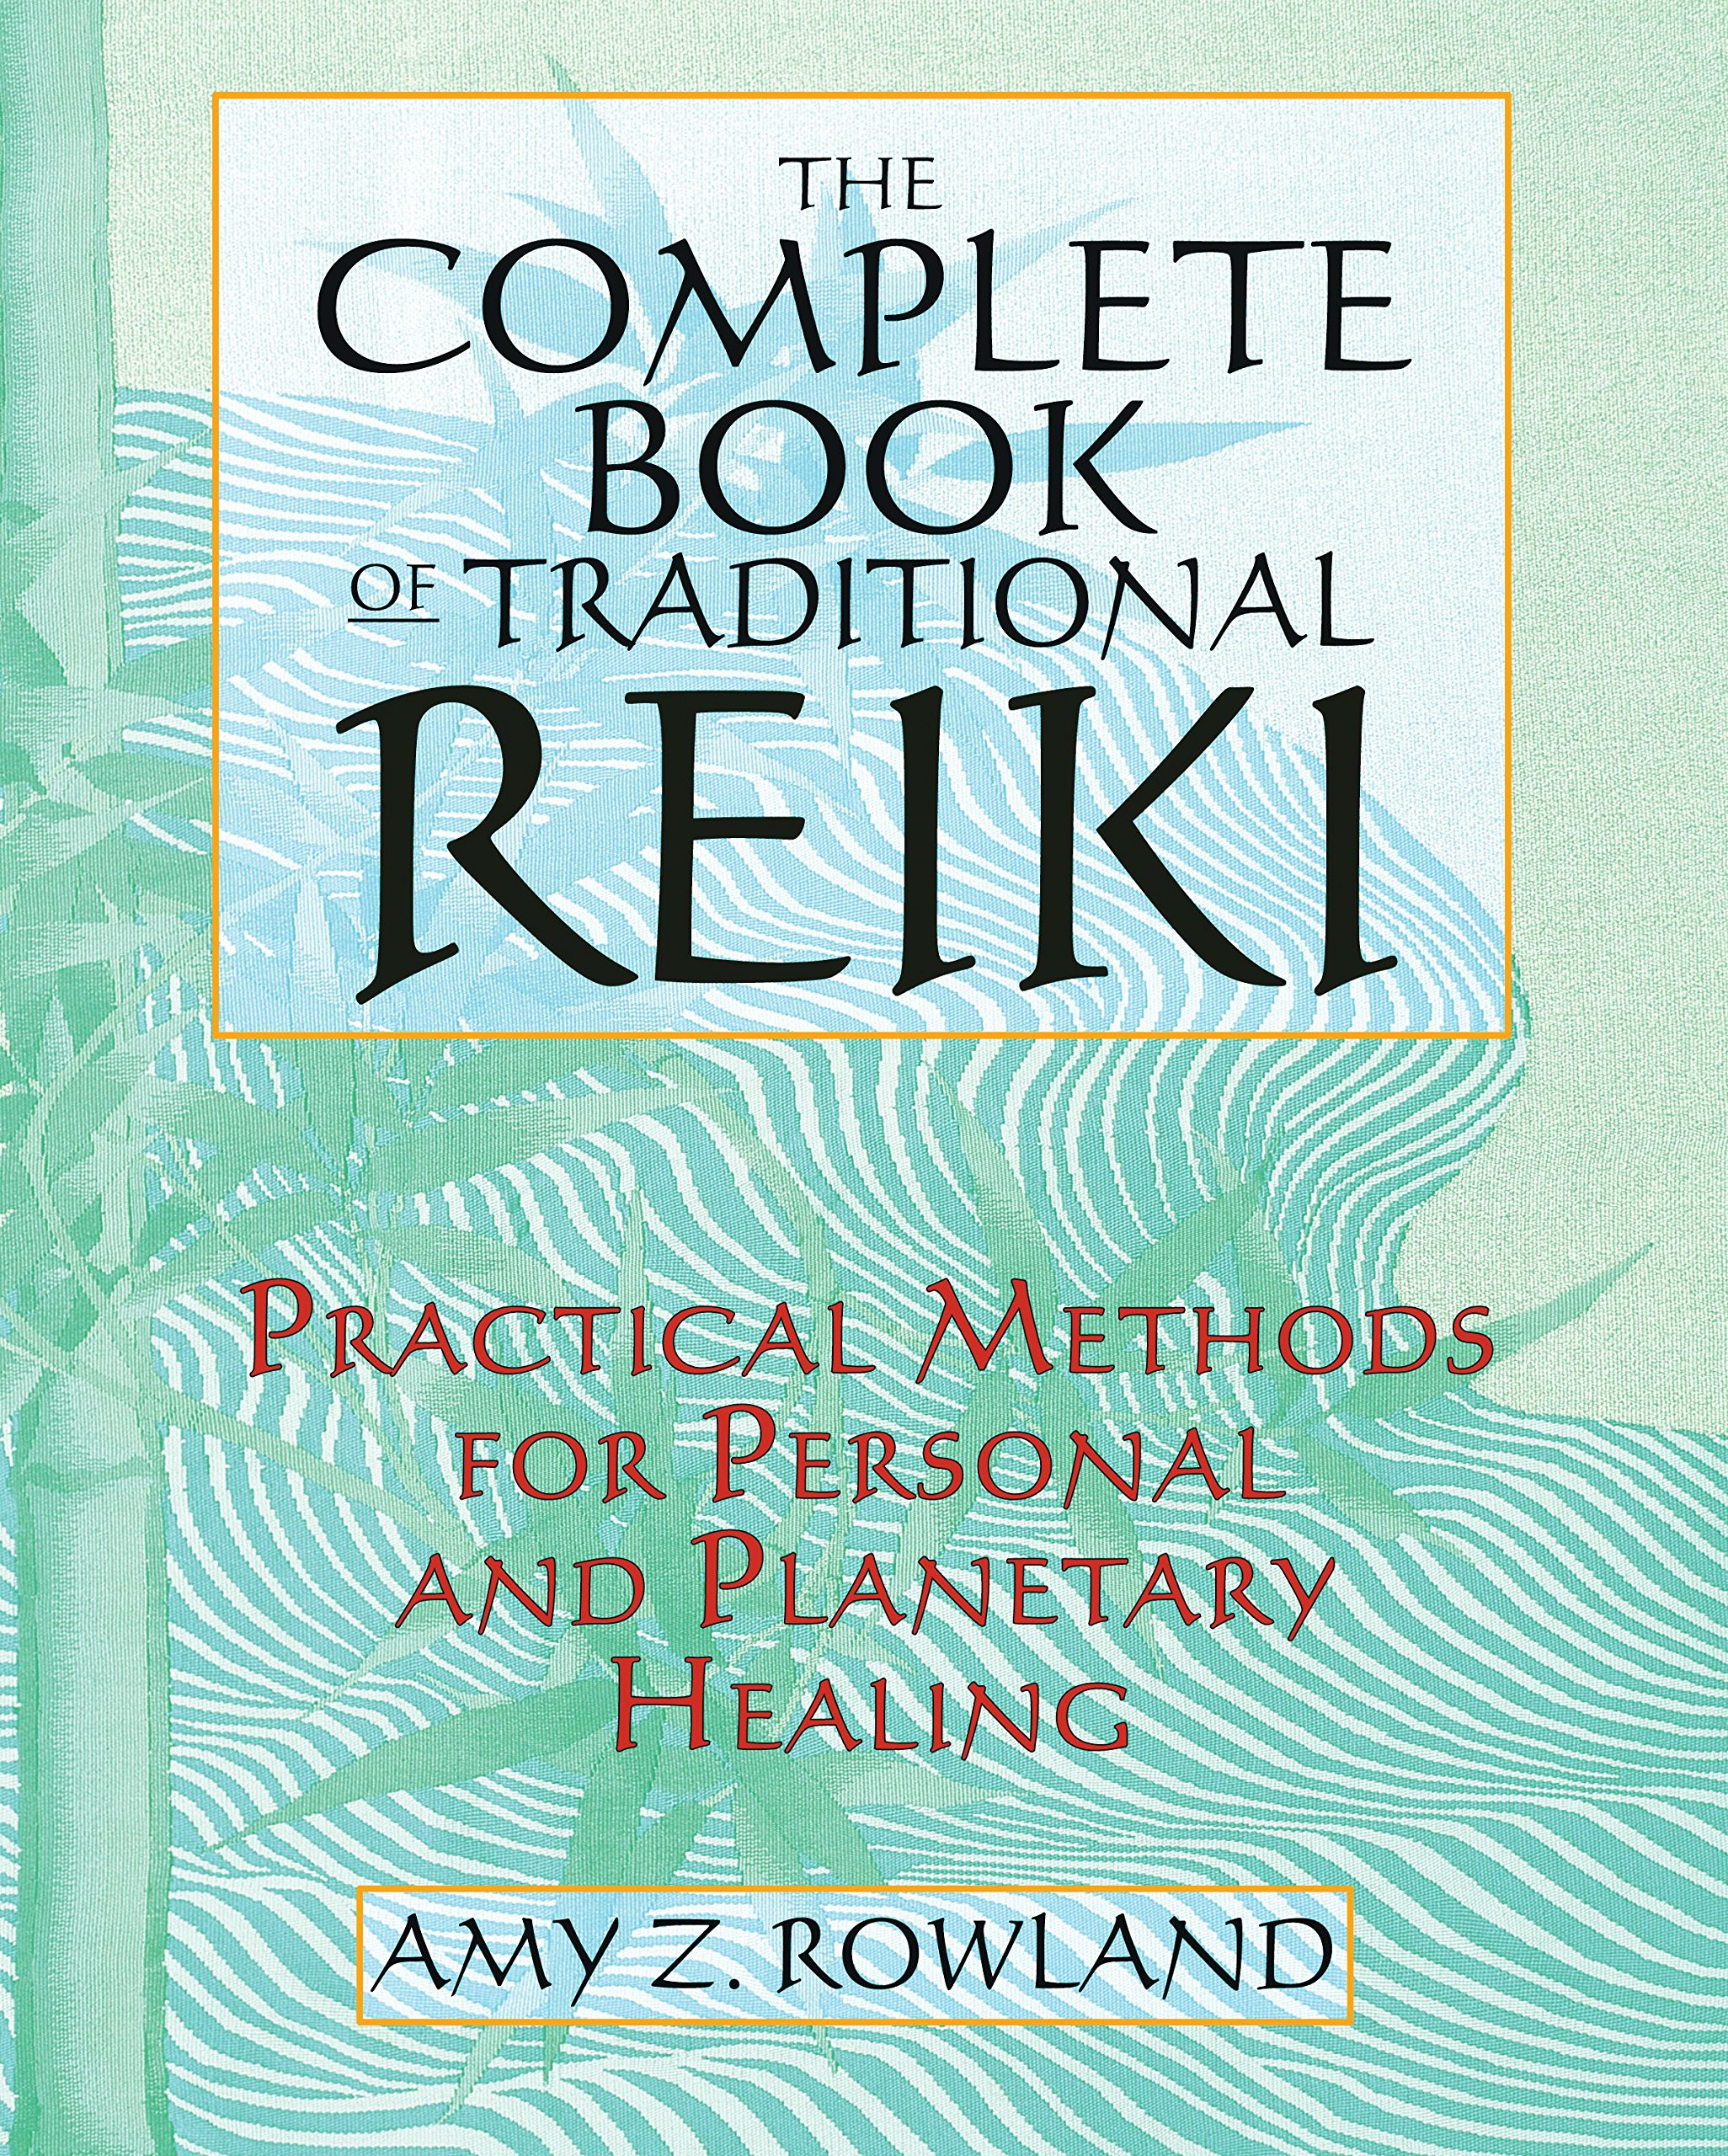 Reiki certificate template software images certificate design certificate template software image collections templates reiki certificate template software gallery certificate design reiki certificate template yadclub Choice Image